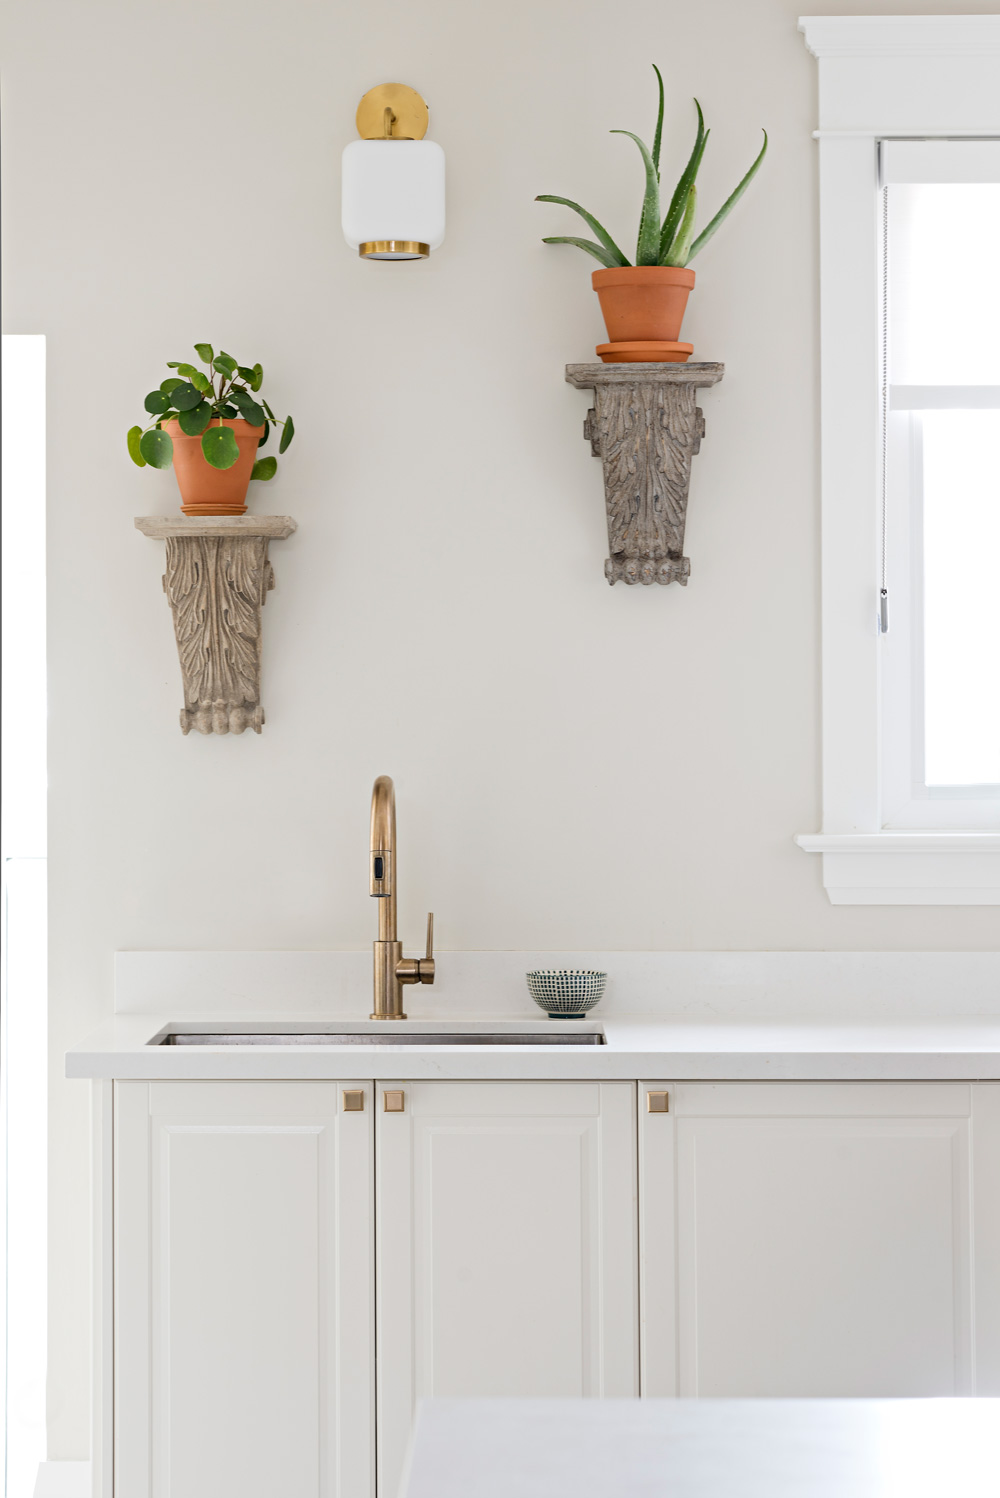 Staggered wall mounted corbels with plants above kitchen sink with brass faucet, cabinet knobs and sconces.